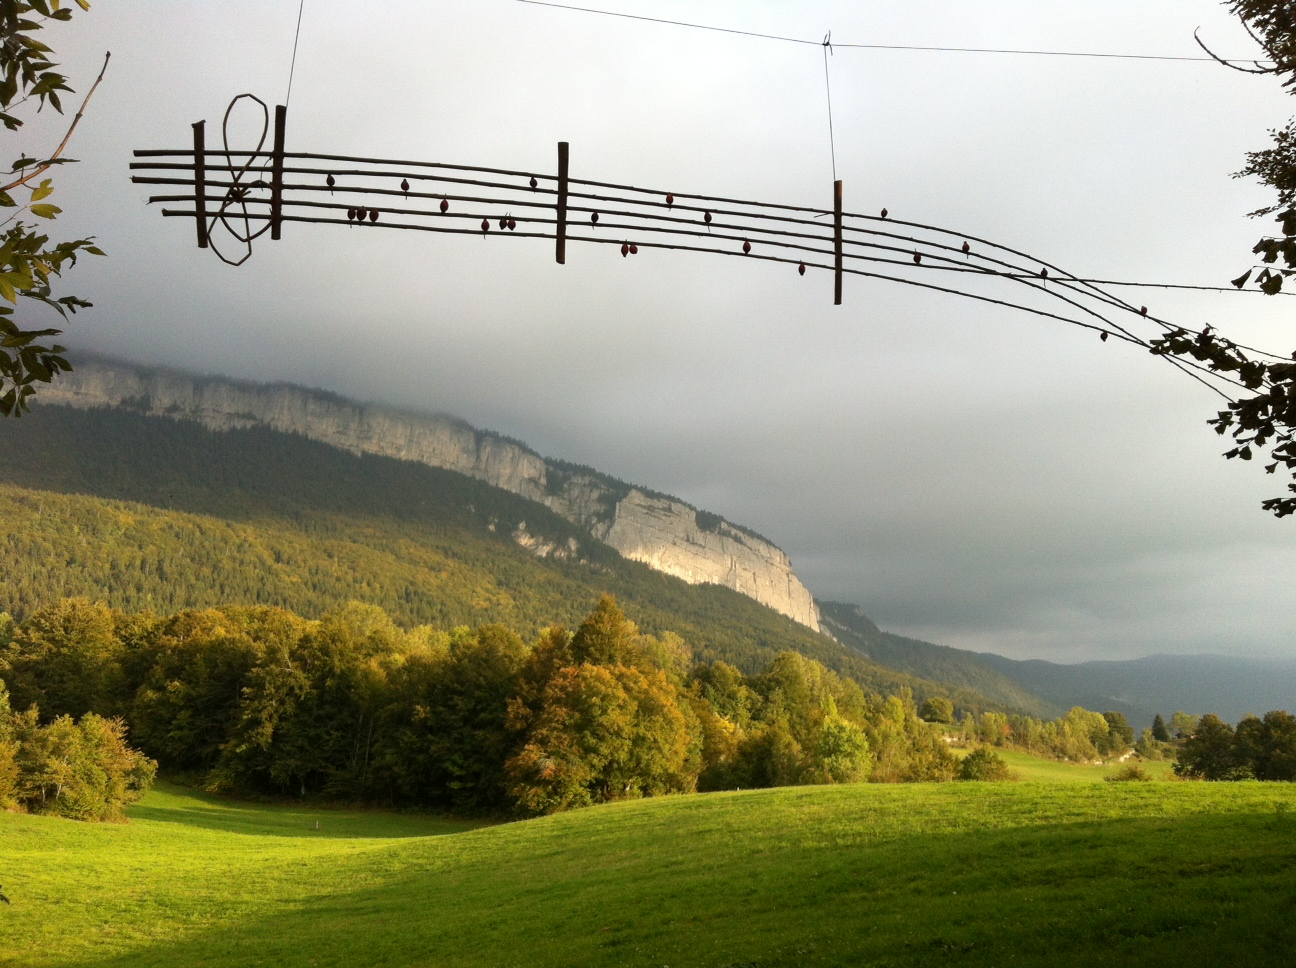 LAND ART VERCORS